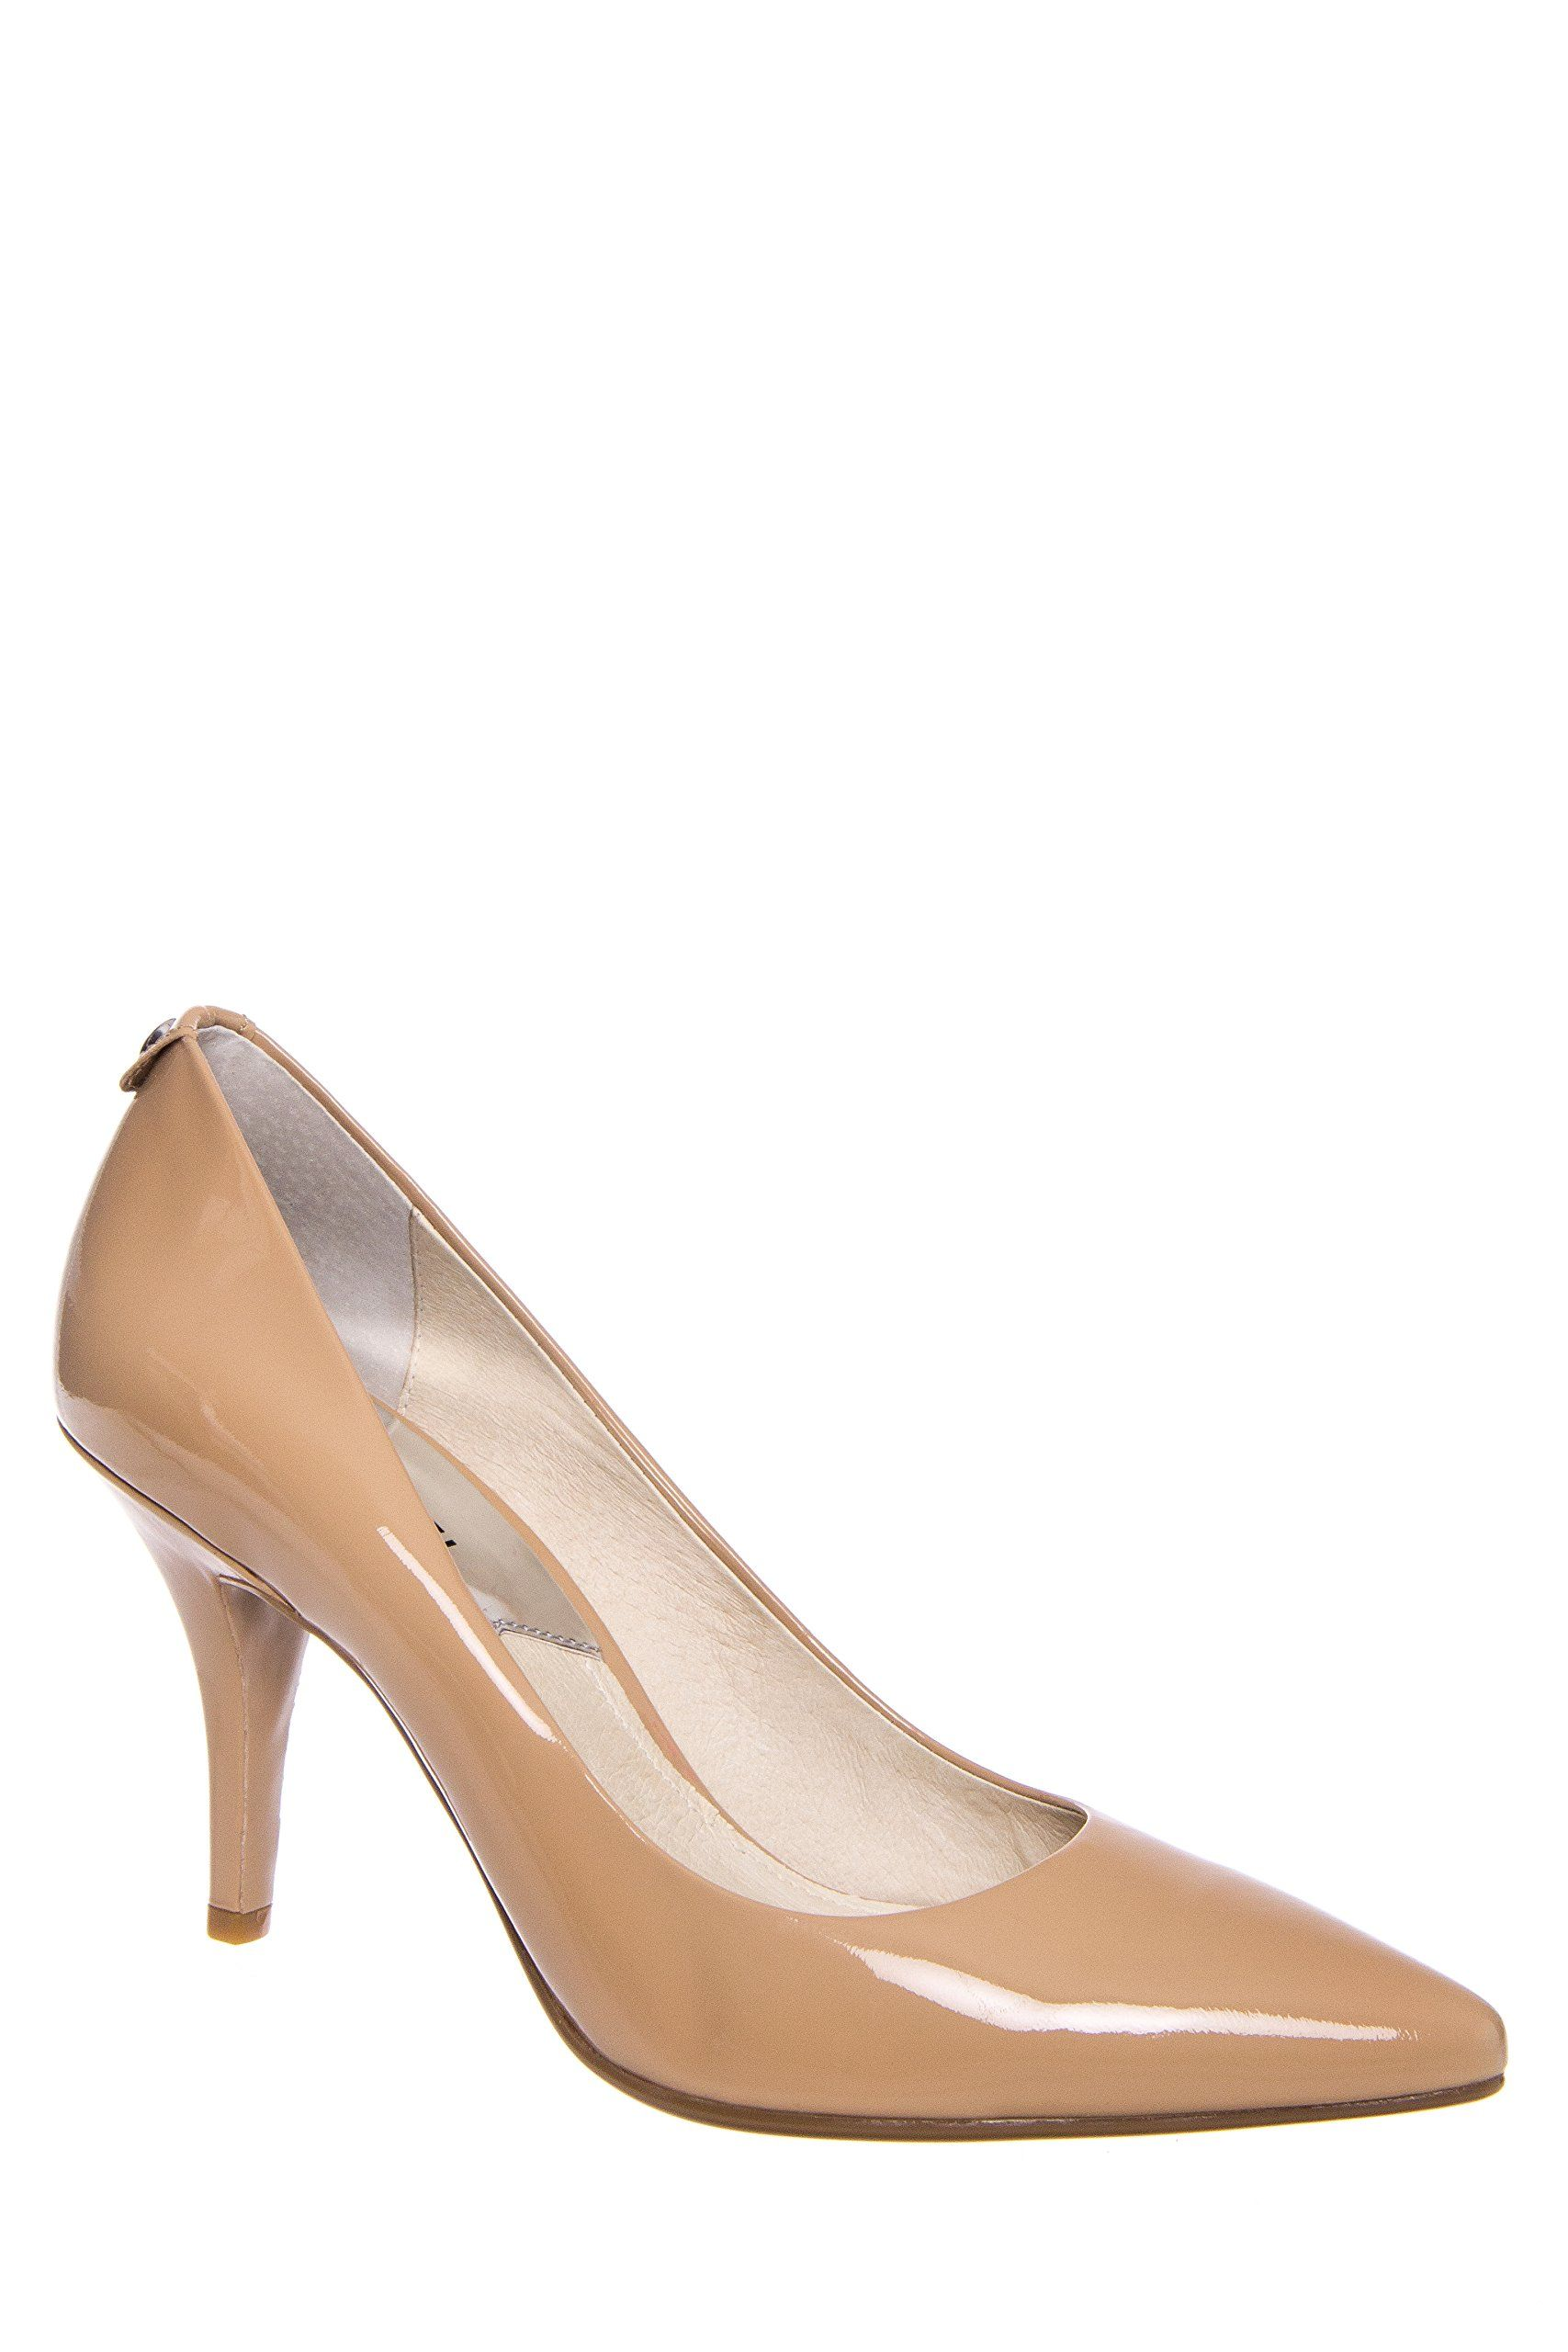 aaa0d34ac008 MICHAEL Michael Kors Women s MK Flex Mid Pump Nude Patent Pump 8.5 M. Made  in USA or Imported.